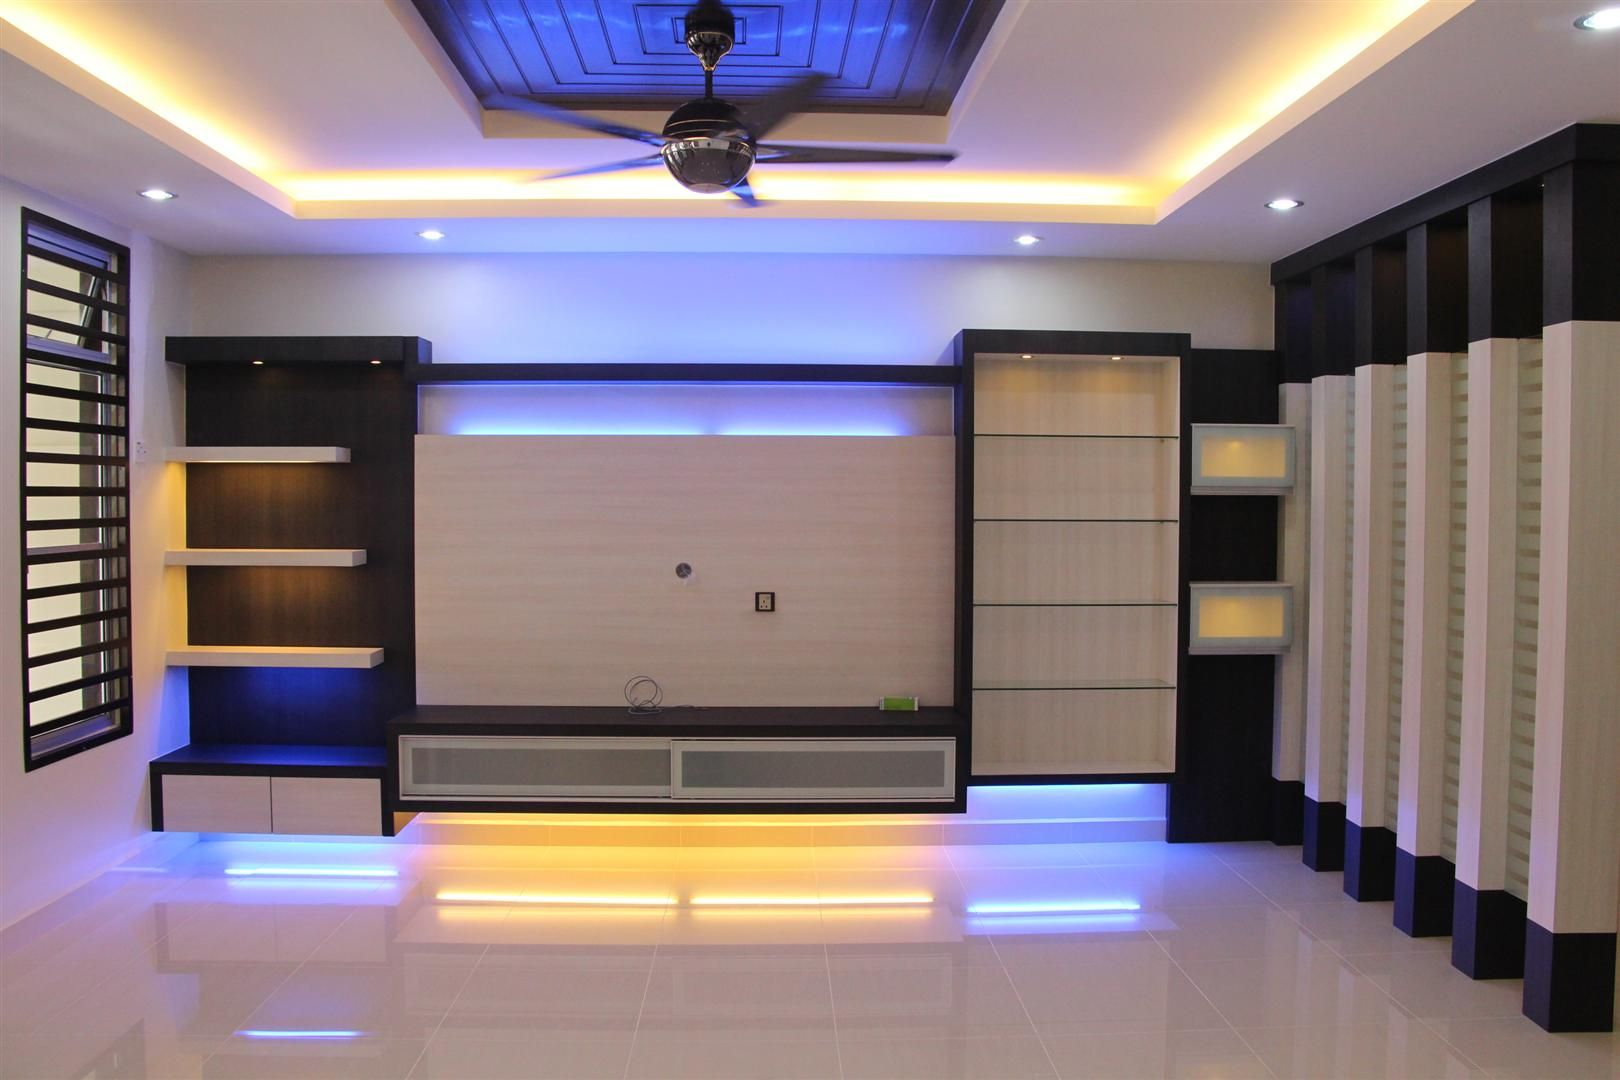 Trend Tv Unit Design For Hall 2018 Incoming Search Terms:full HD Pic Of Tv  Unit In Hallhome Tv Hall Design